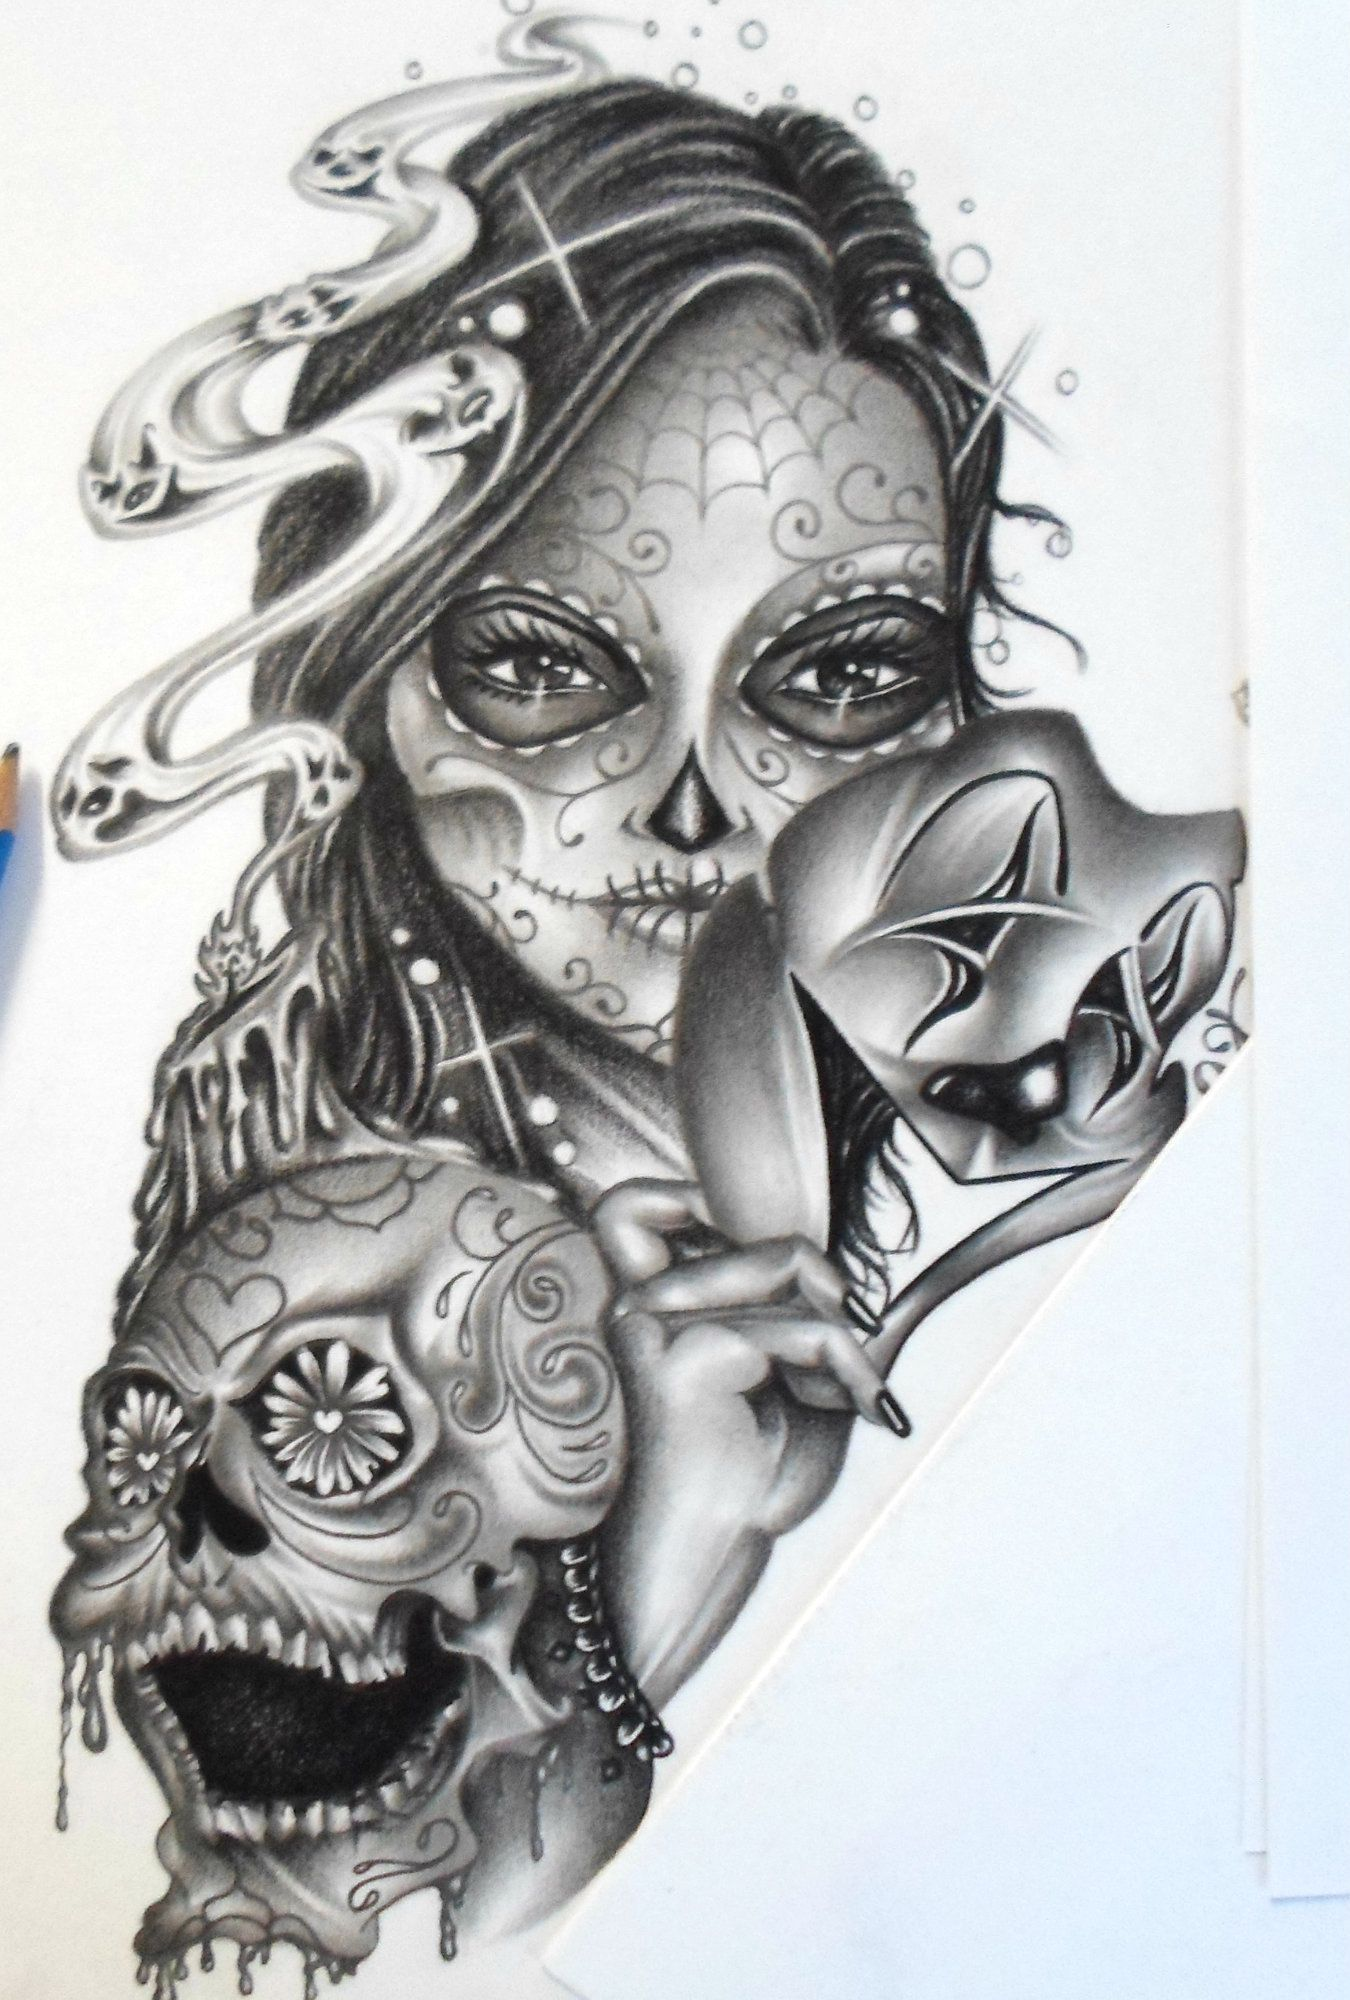 day of the dead art lowrider arte chicano art chicano art pinterest chicano art chicano. Black Bedroom Furniture Sets. Home Design Ideas